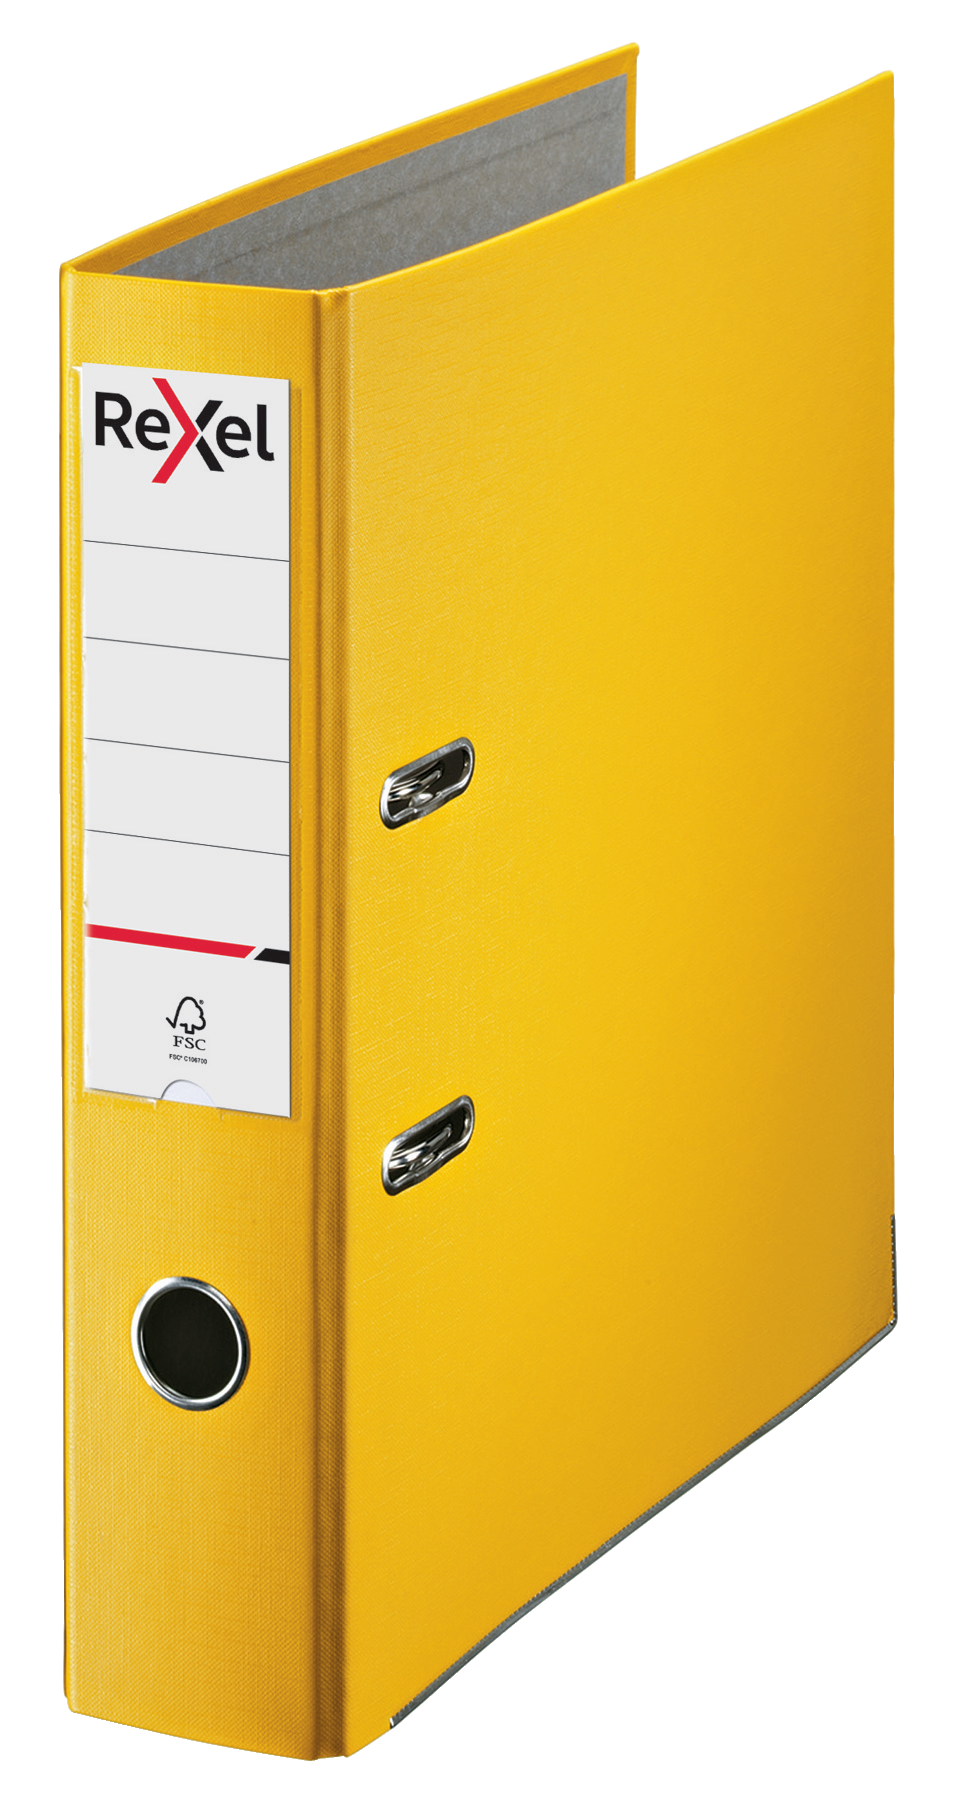 Lever Arch Files Rexel Lever Arch File ECO Polypropylene A4 75mm Spine Width Yellow